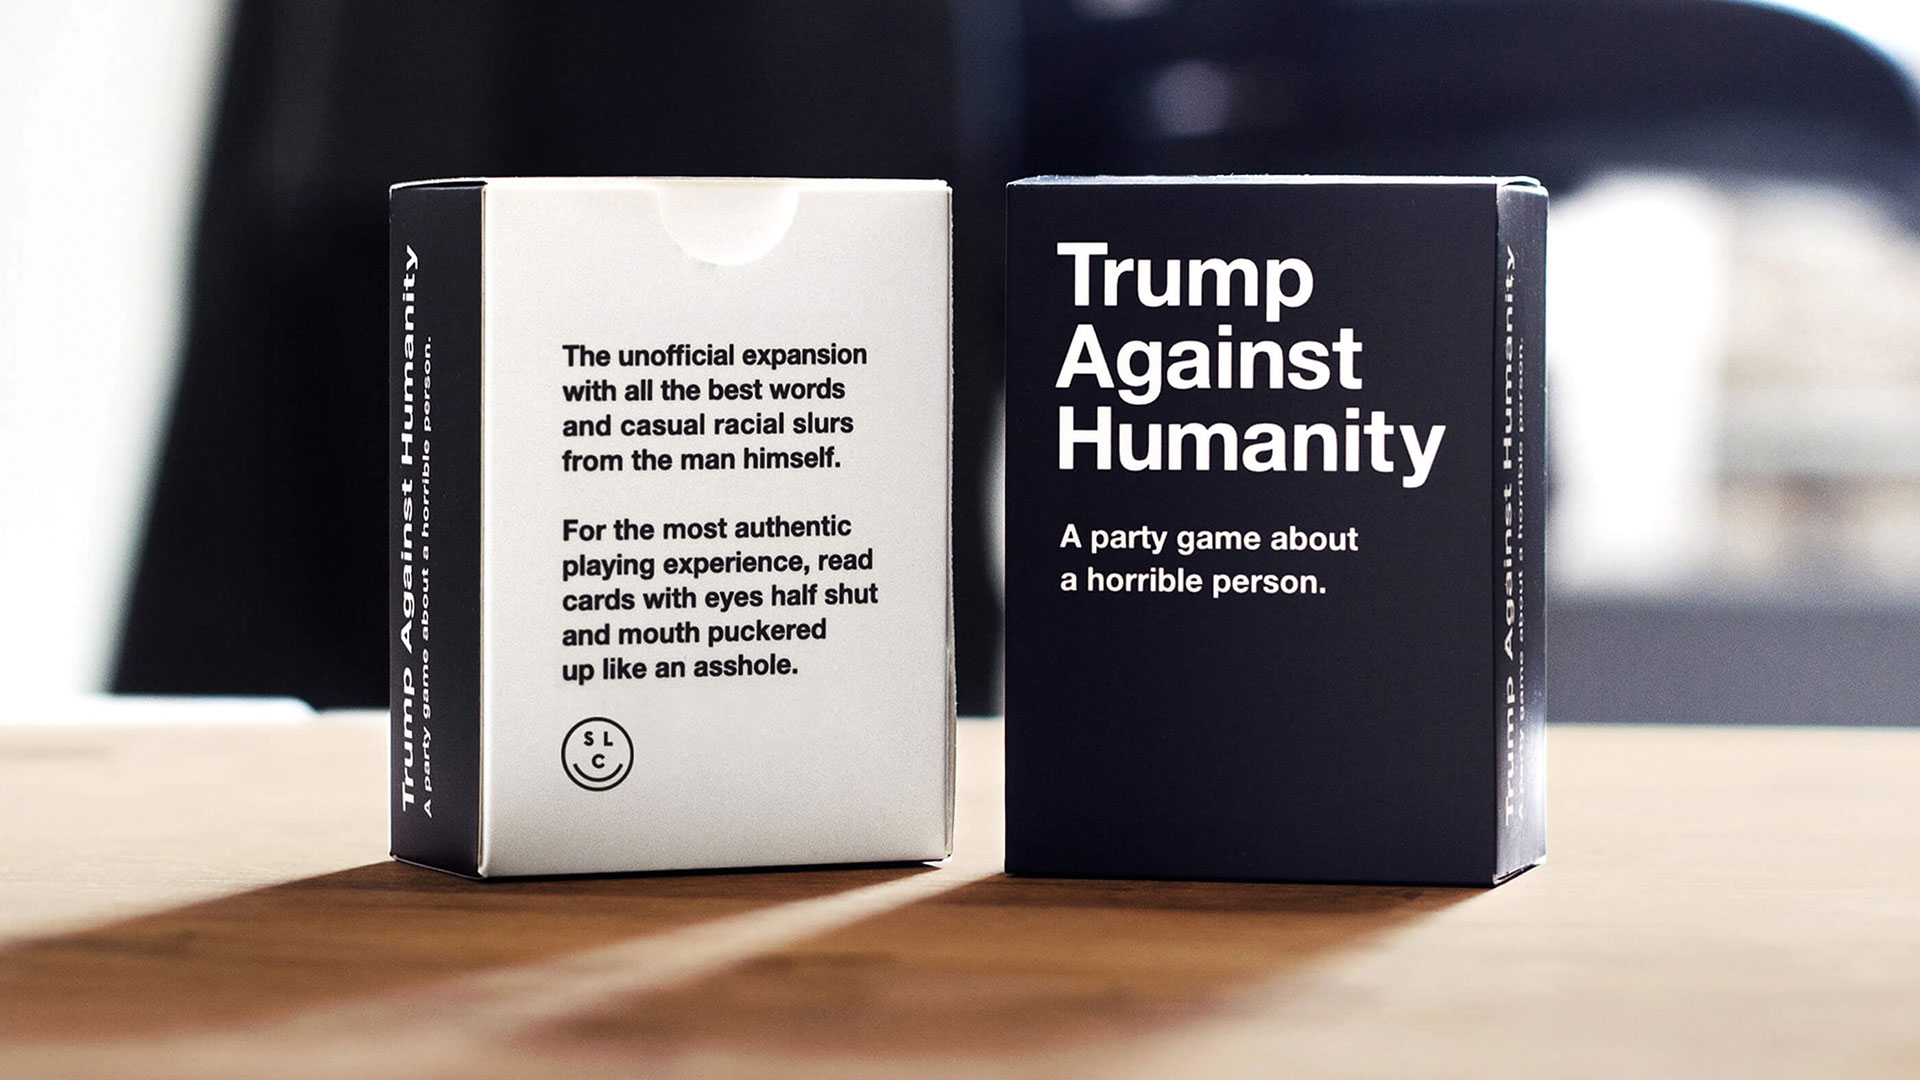 Love Cards Against Humanity And Hating On Donald Trump Have We Got The Game For You